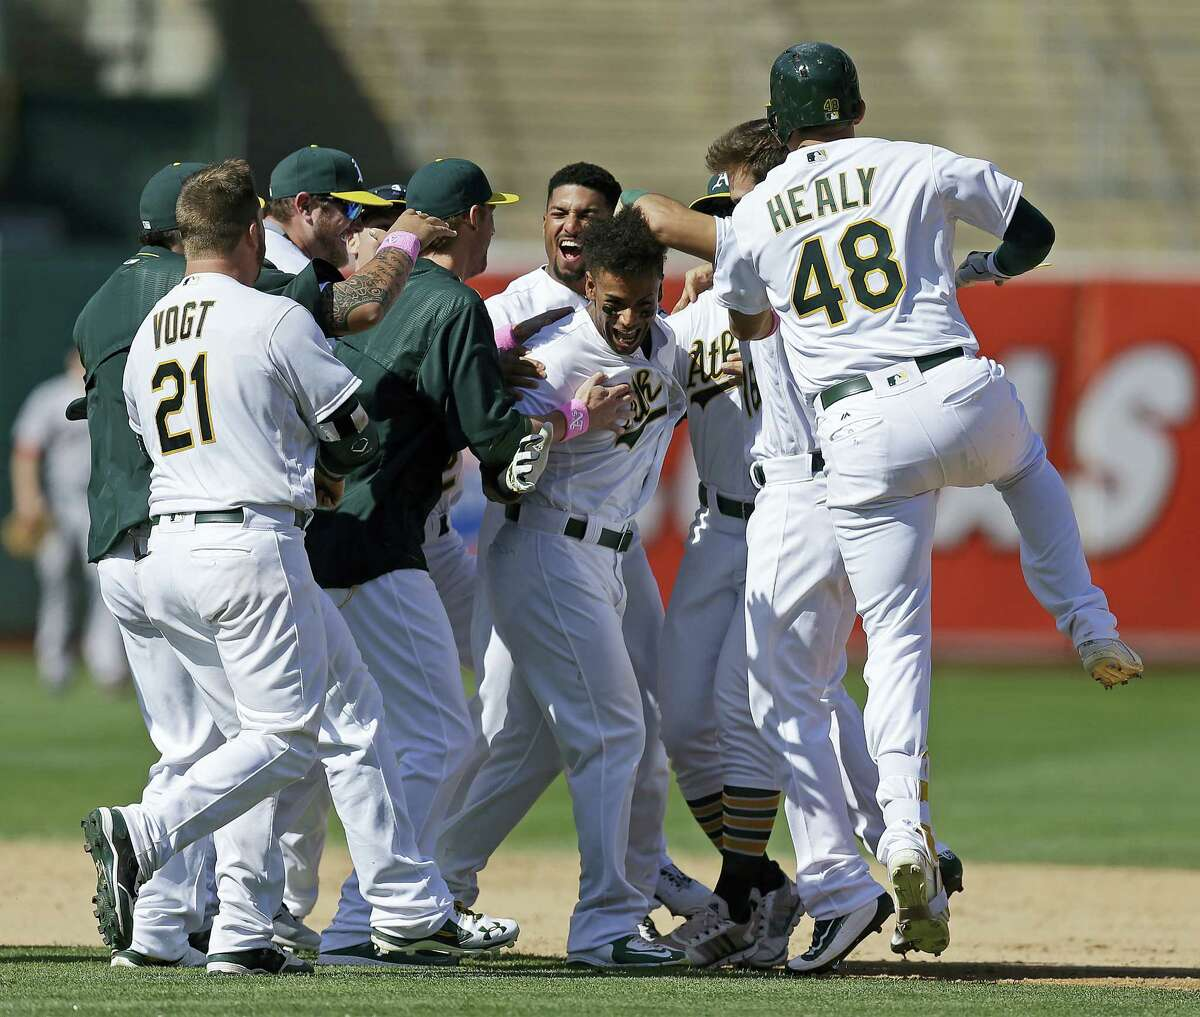 Oakland Athletics' Khris Davis, center, celebrates after making the winning hit against the Boston Red Sox in the ninth inning of a baseball game Sunday, Sept. 4, 2016, in Oakland, Calif. (AP Photo/Ben Margot)